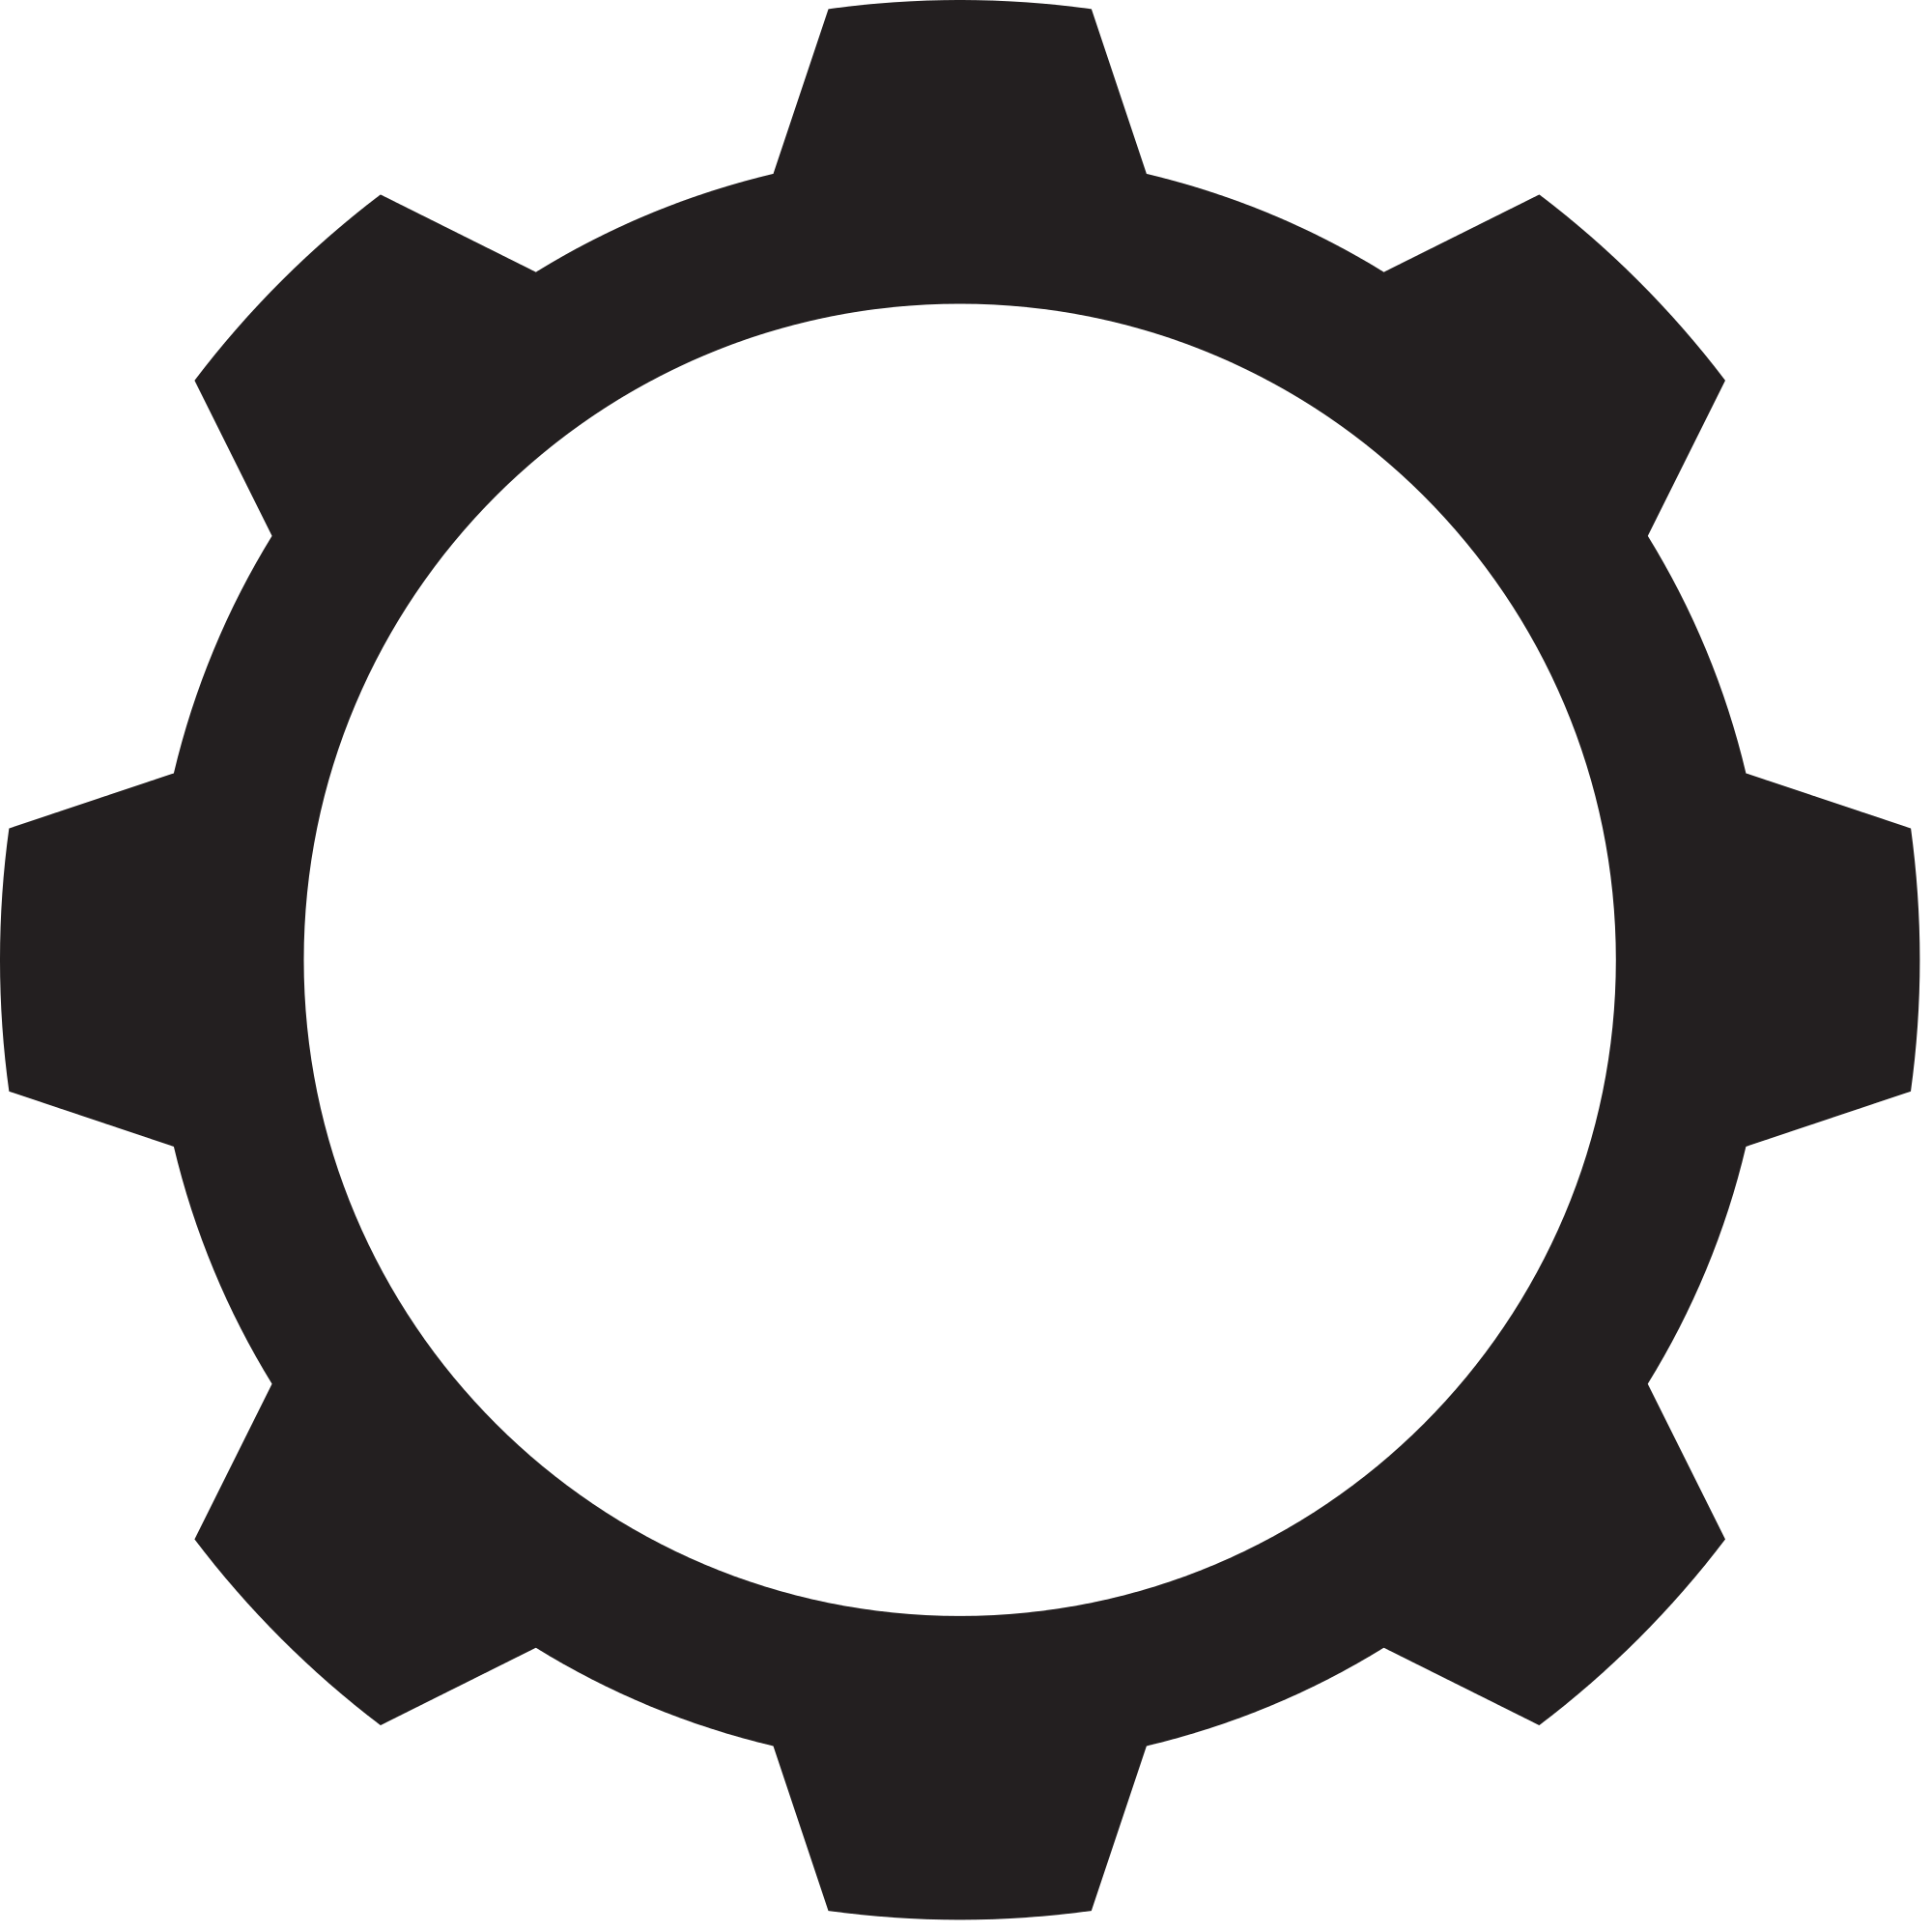 Gear Png Black And White - File:Gear shape black 11.svg - Wikimedia Commons